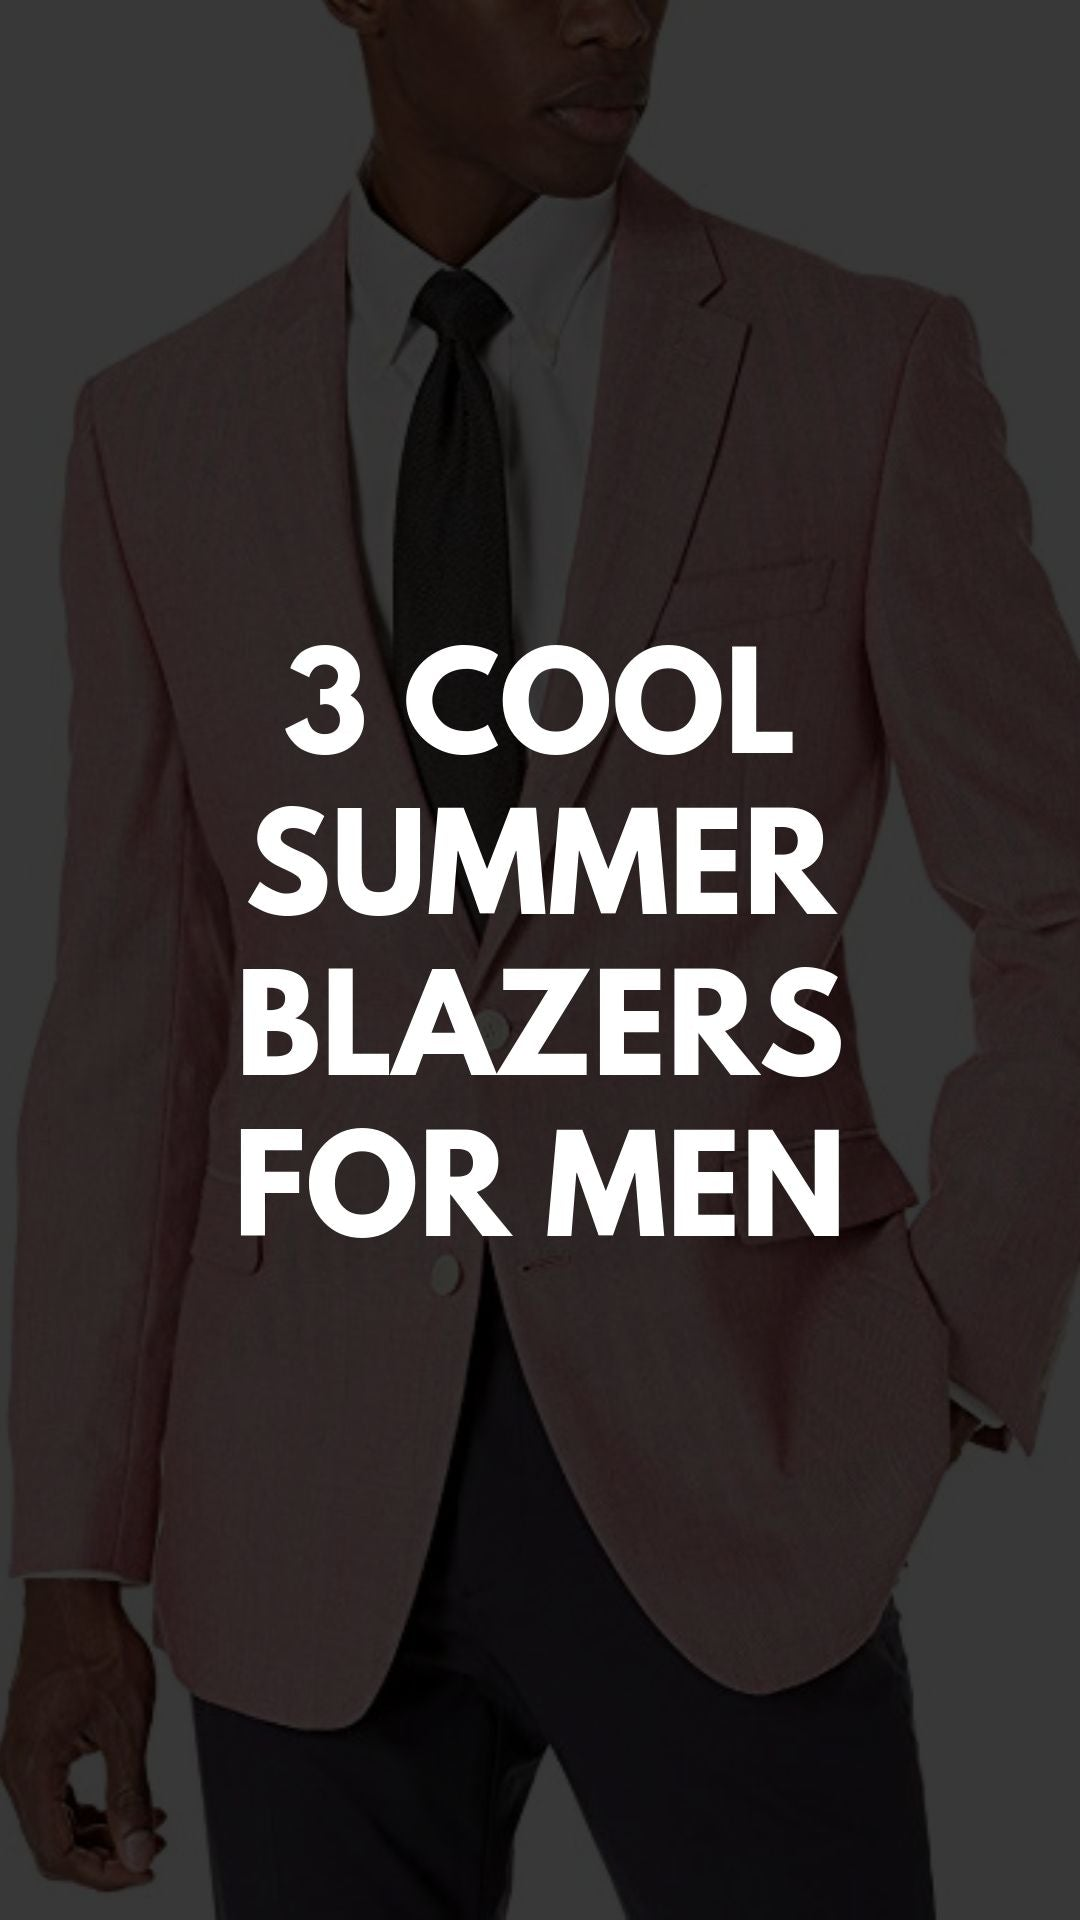 3 COOL SUMMER BLAZERS  FOR MEN